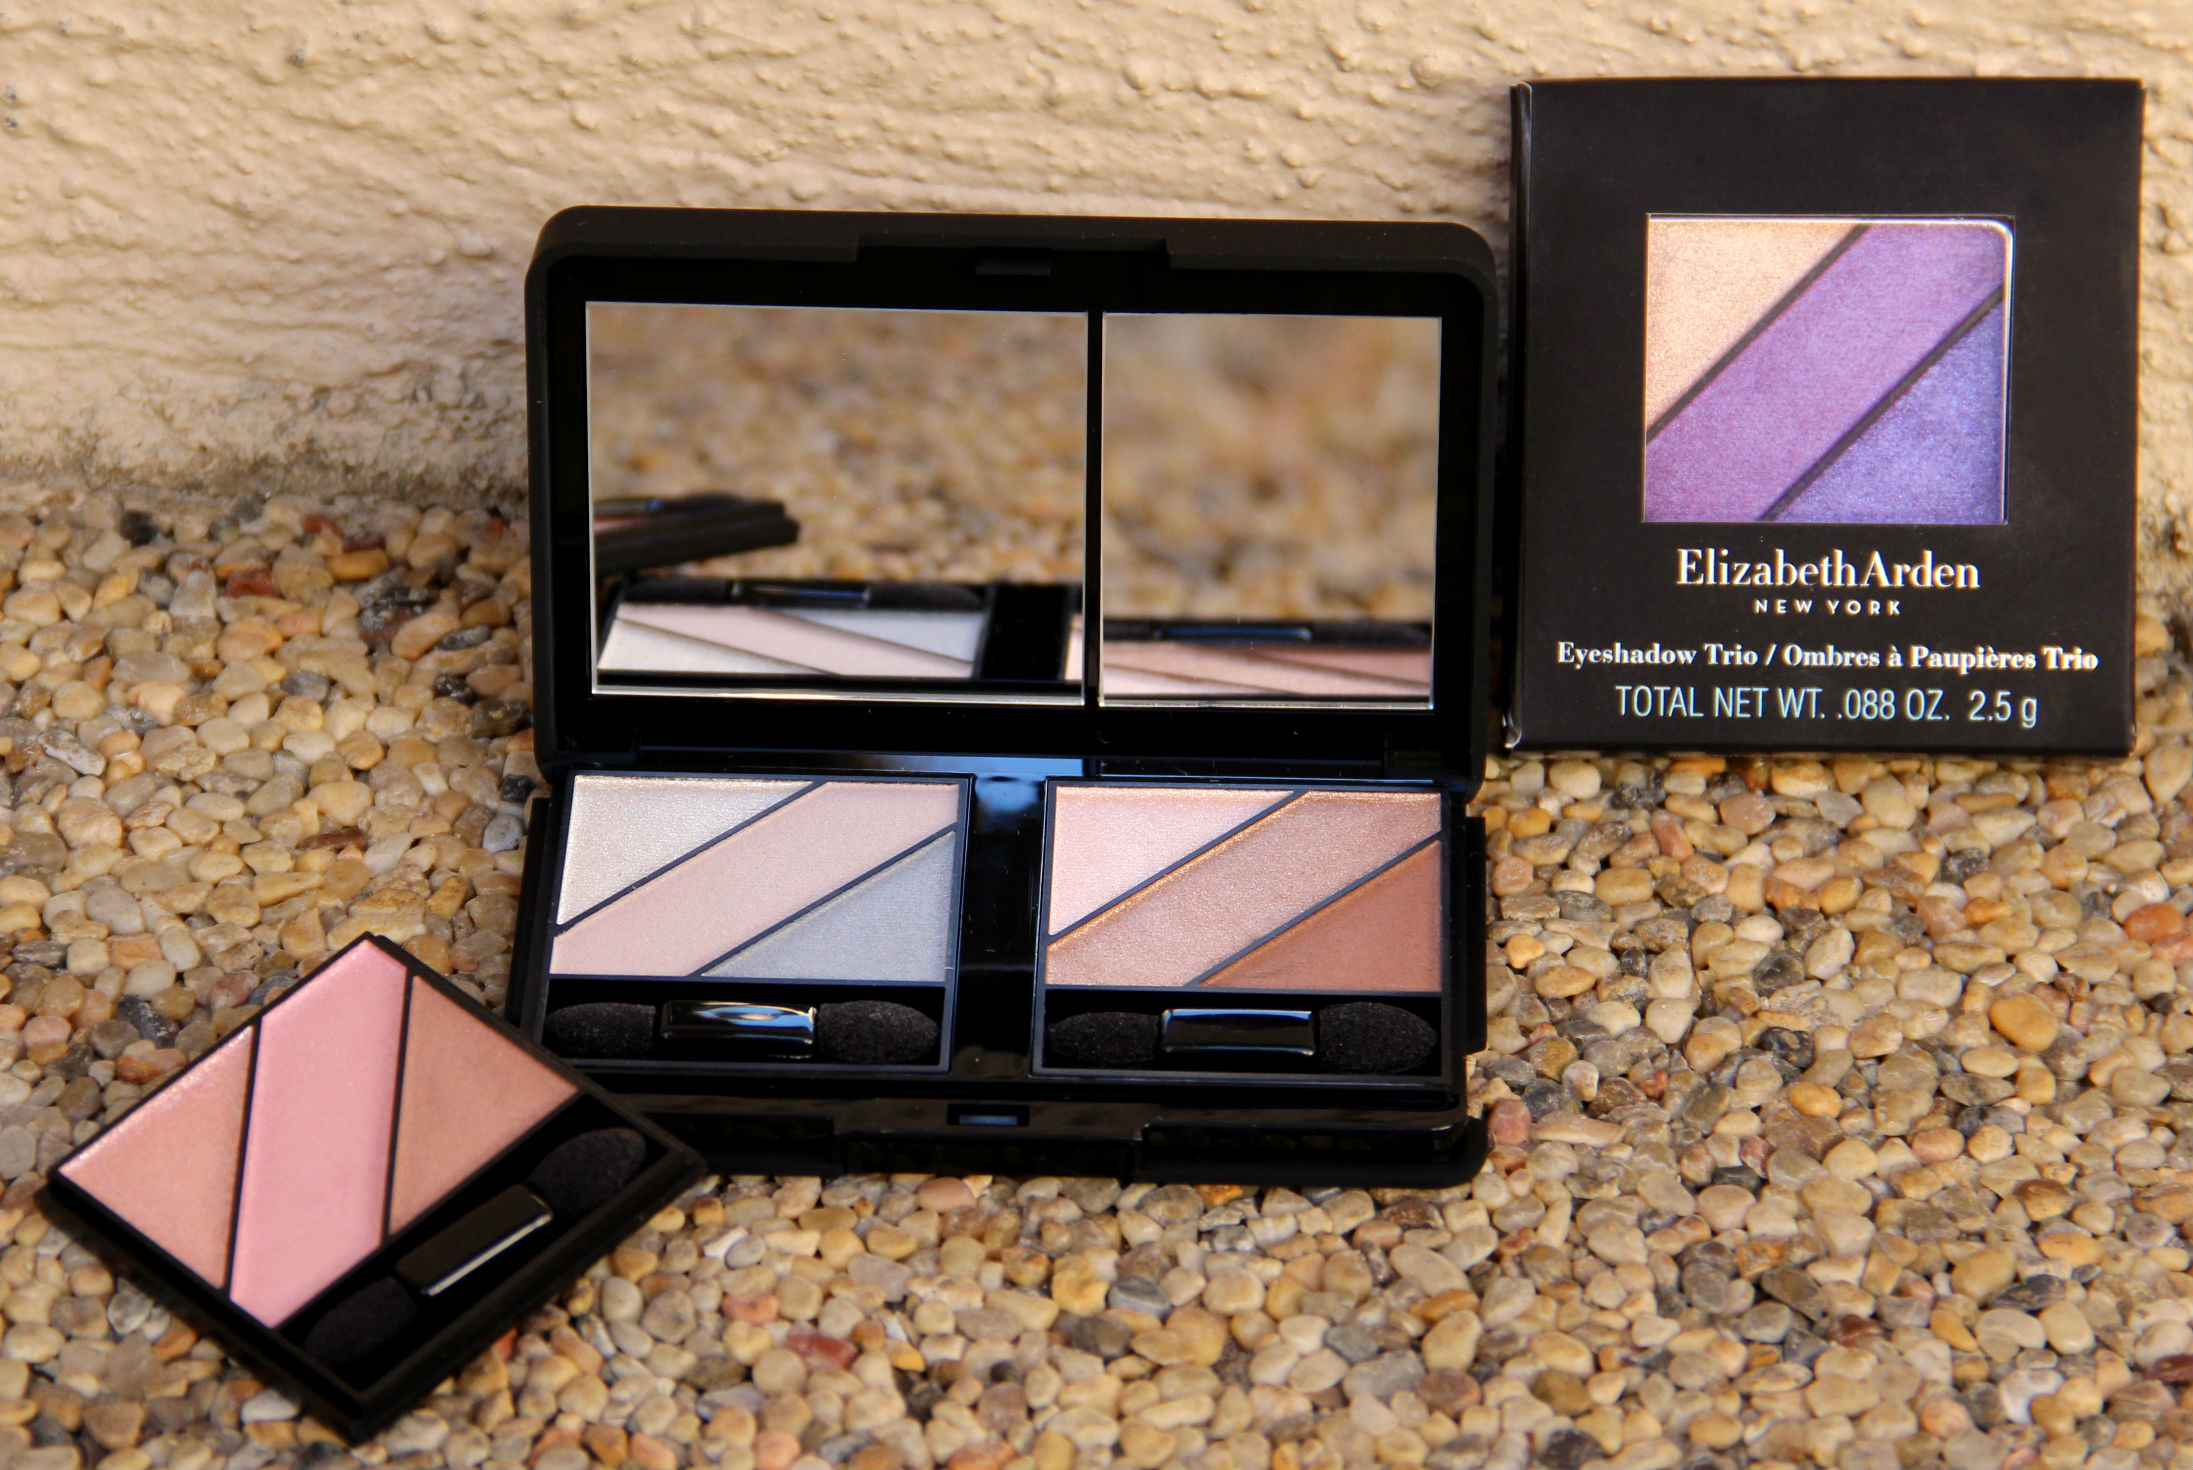 Elizabeth Arden Eye Shadows